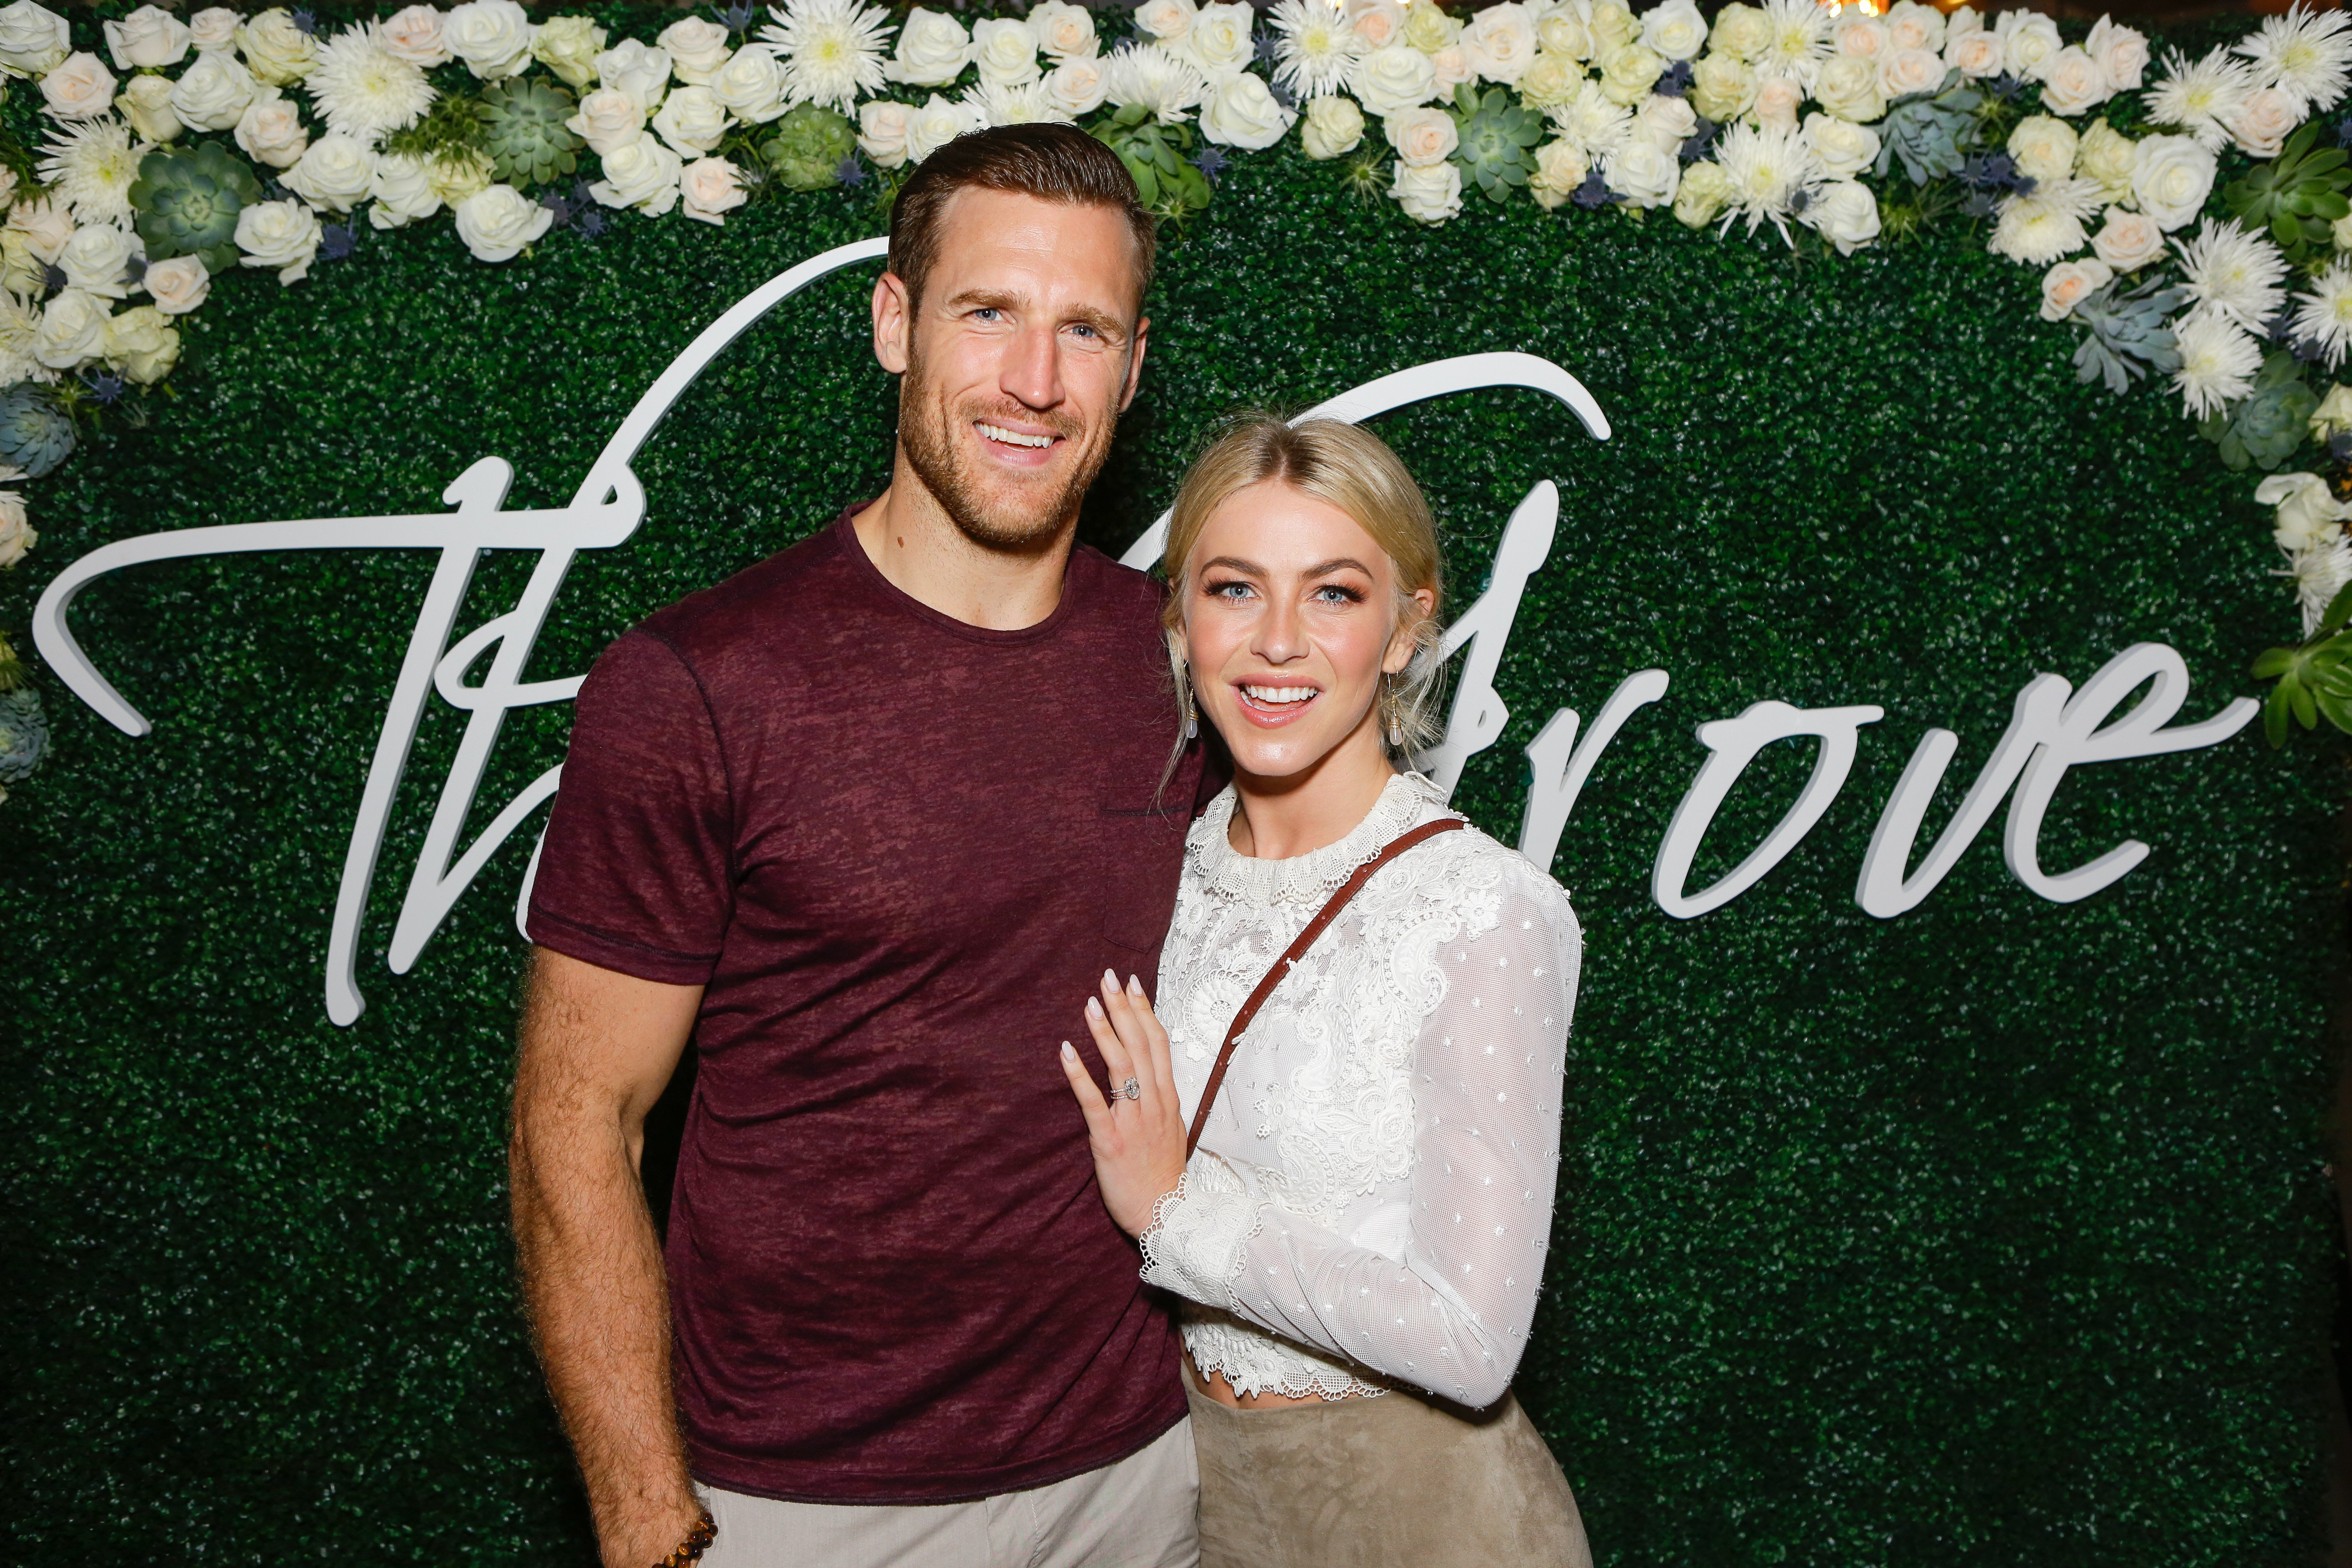 Brooks Laich and Julianne Hough attends the Paint & Sip & Help event in Los Angeles, California on October 12, 2017 | Photo: Getty Images